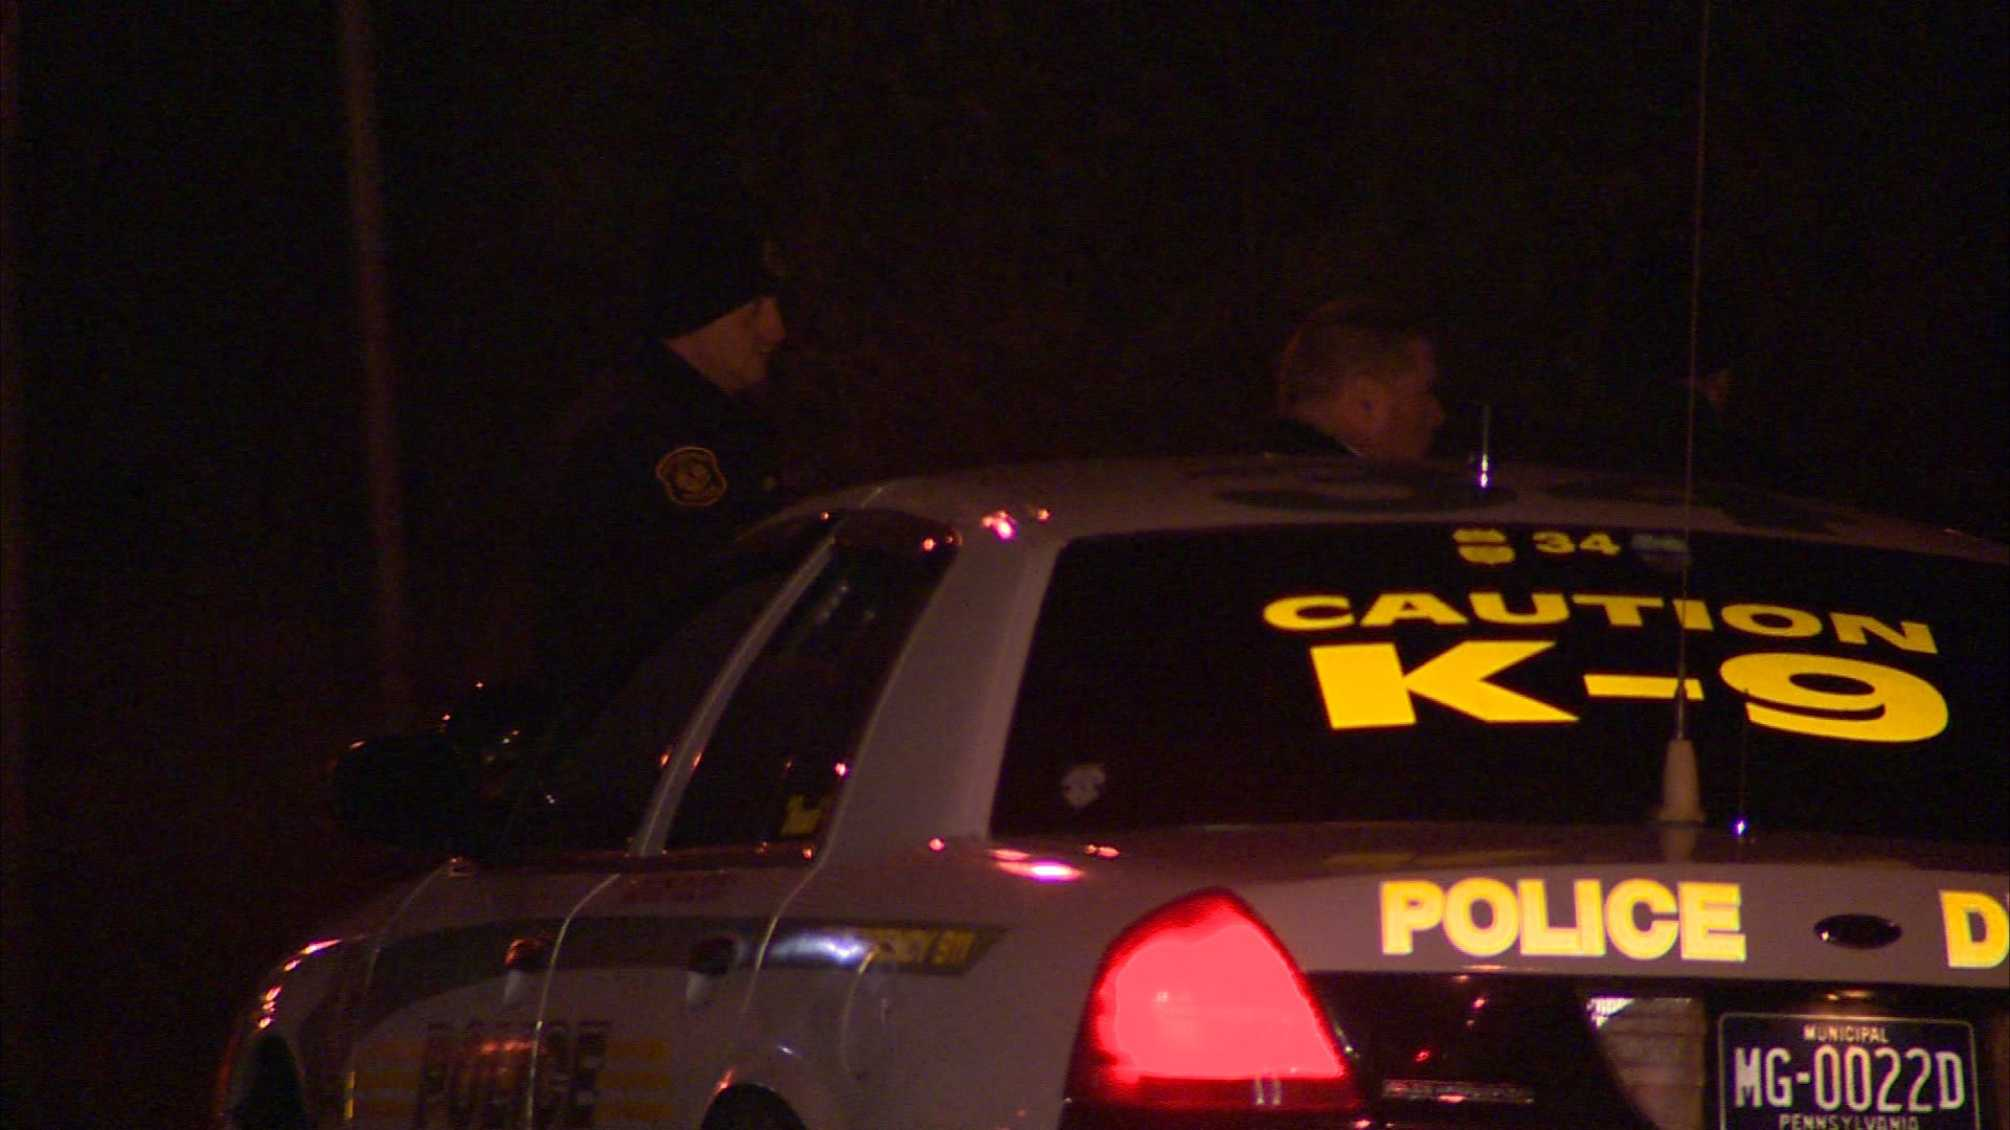 A person was shot in late Sunday night in Homewood, Pittsburgh police said.